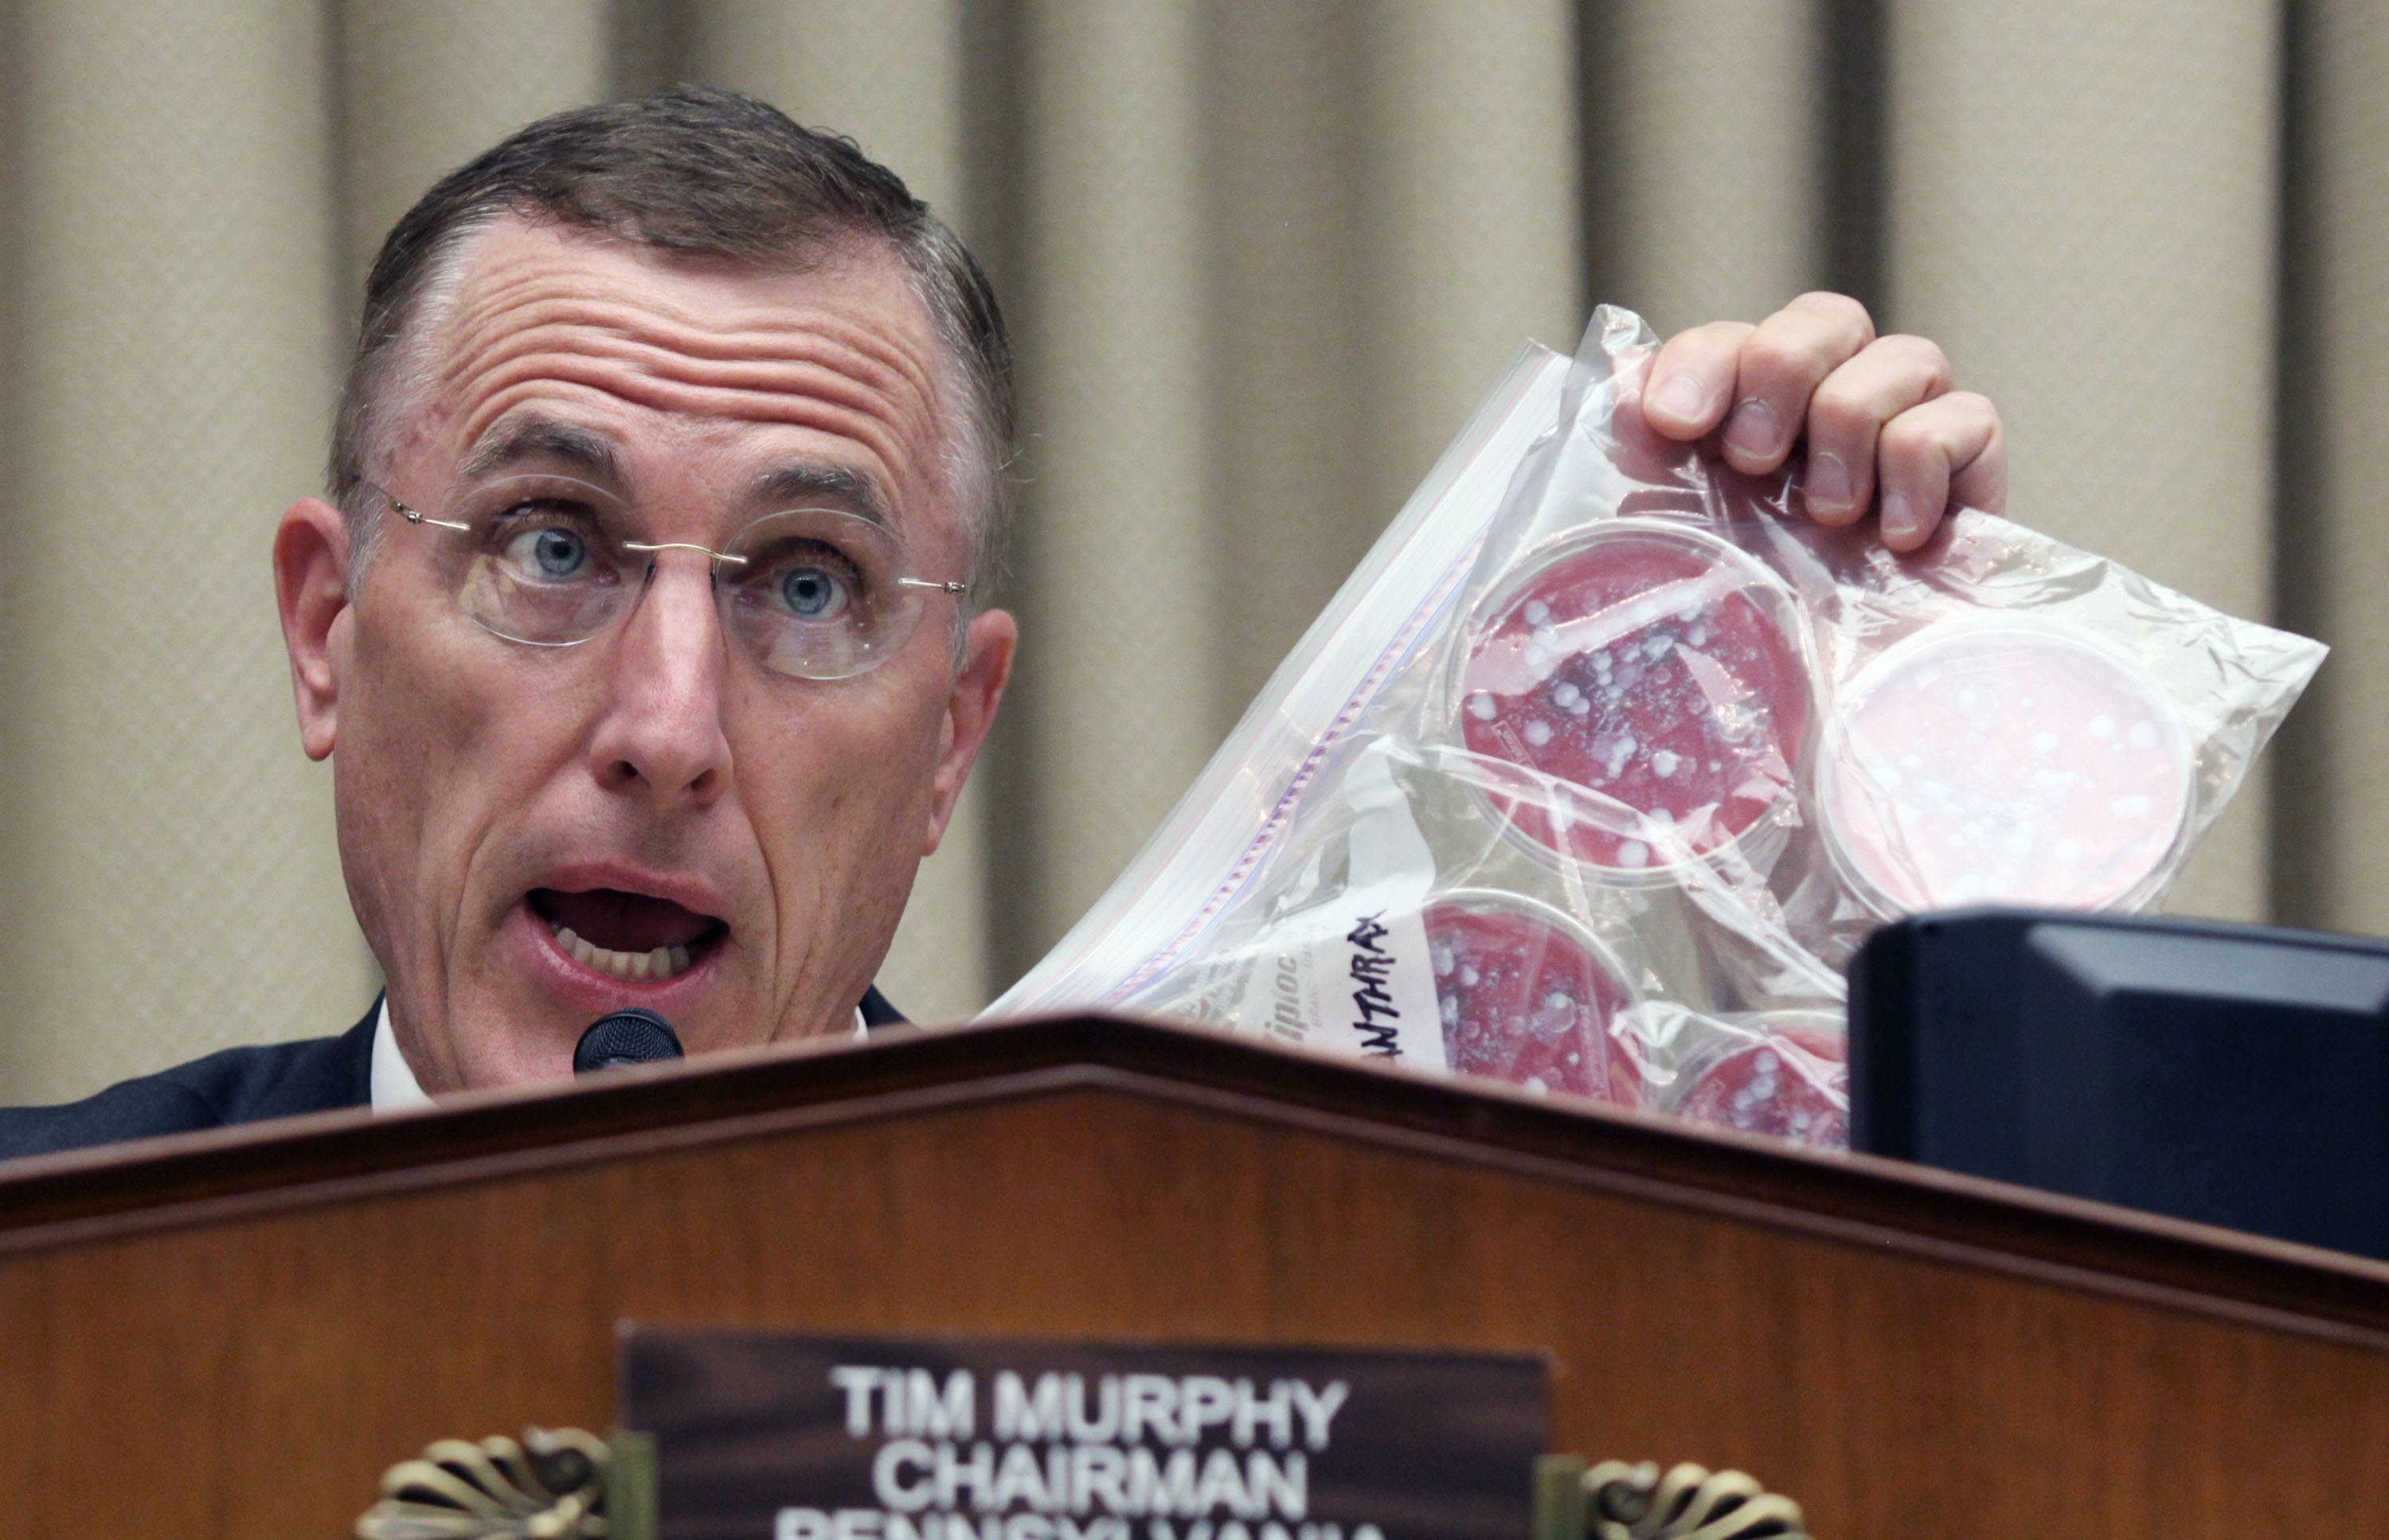 House Oversight and Investigations subcommittee Chairman Rep. Tim Murphy holds a bag to illustrate how poorly some strains of dangerous diseases are stored by the Centers for Disease Control and Prevention.